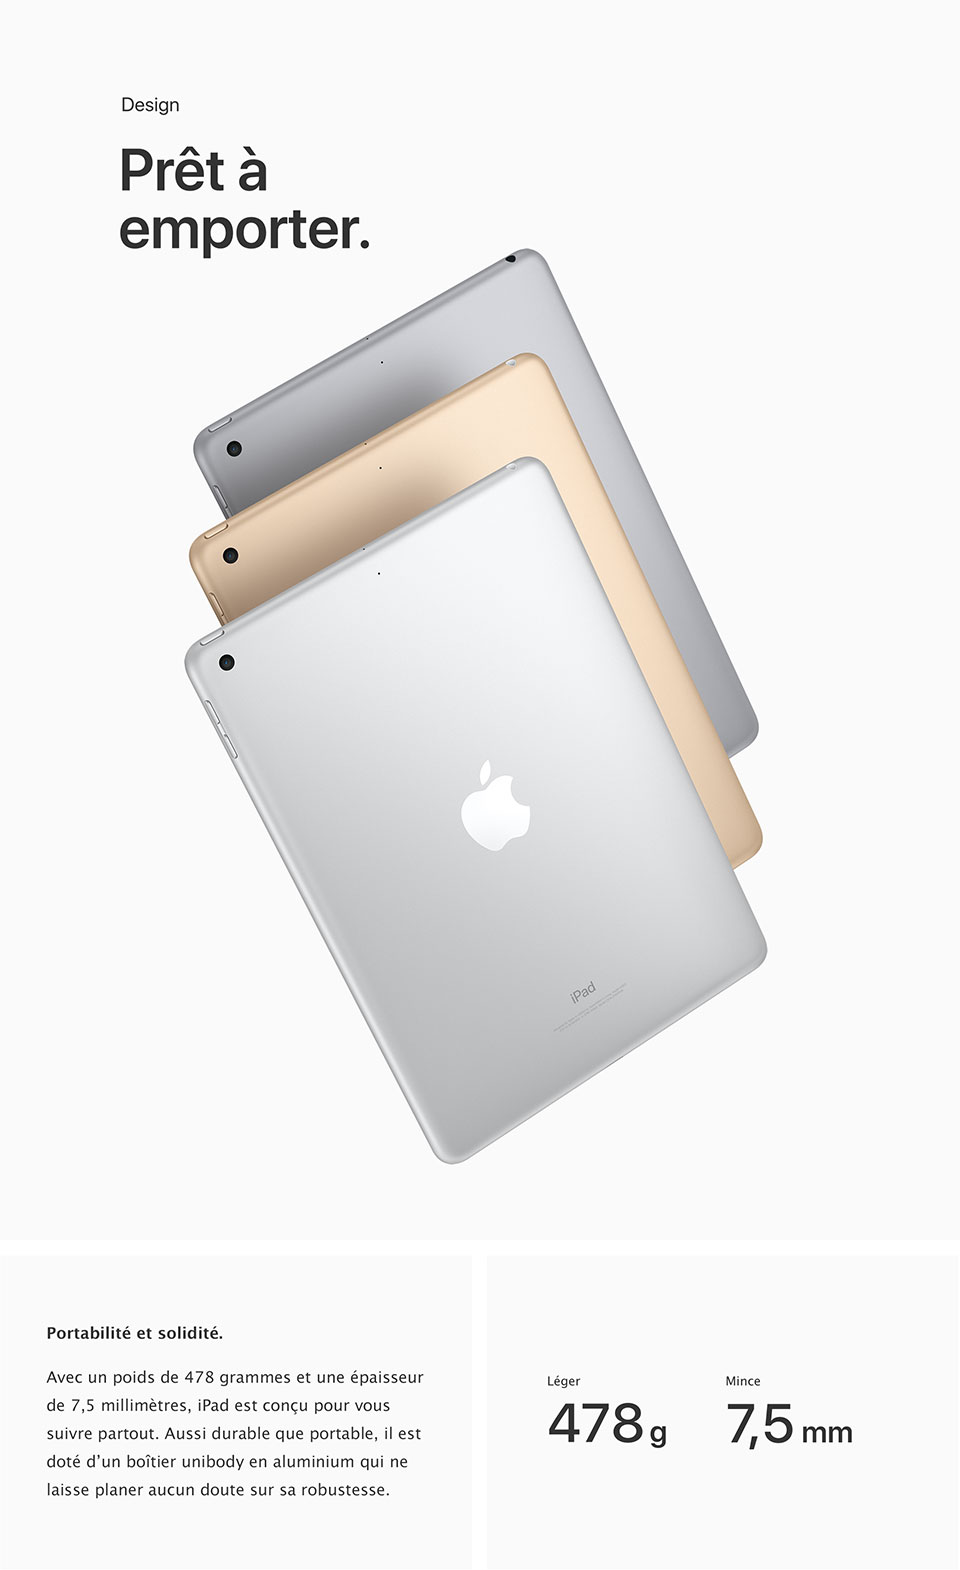 Even though iPad Pro can handle tasks usually reserved for PCs, it's lighter than any PC could hope to be. The 9.7-inch iPad Pro packs heavyweight performance into less than 500 grams. The 12.9-inch iPad Pro is thinner than iPhone 6s and weighs just over 700 grams. And thanks to the aluminum unibody, both sizes feel reassuringly solid in the hand.